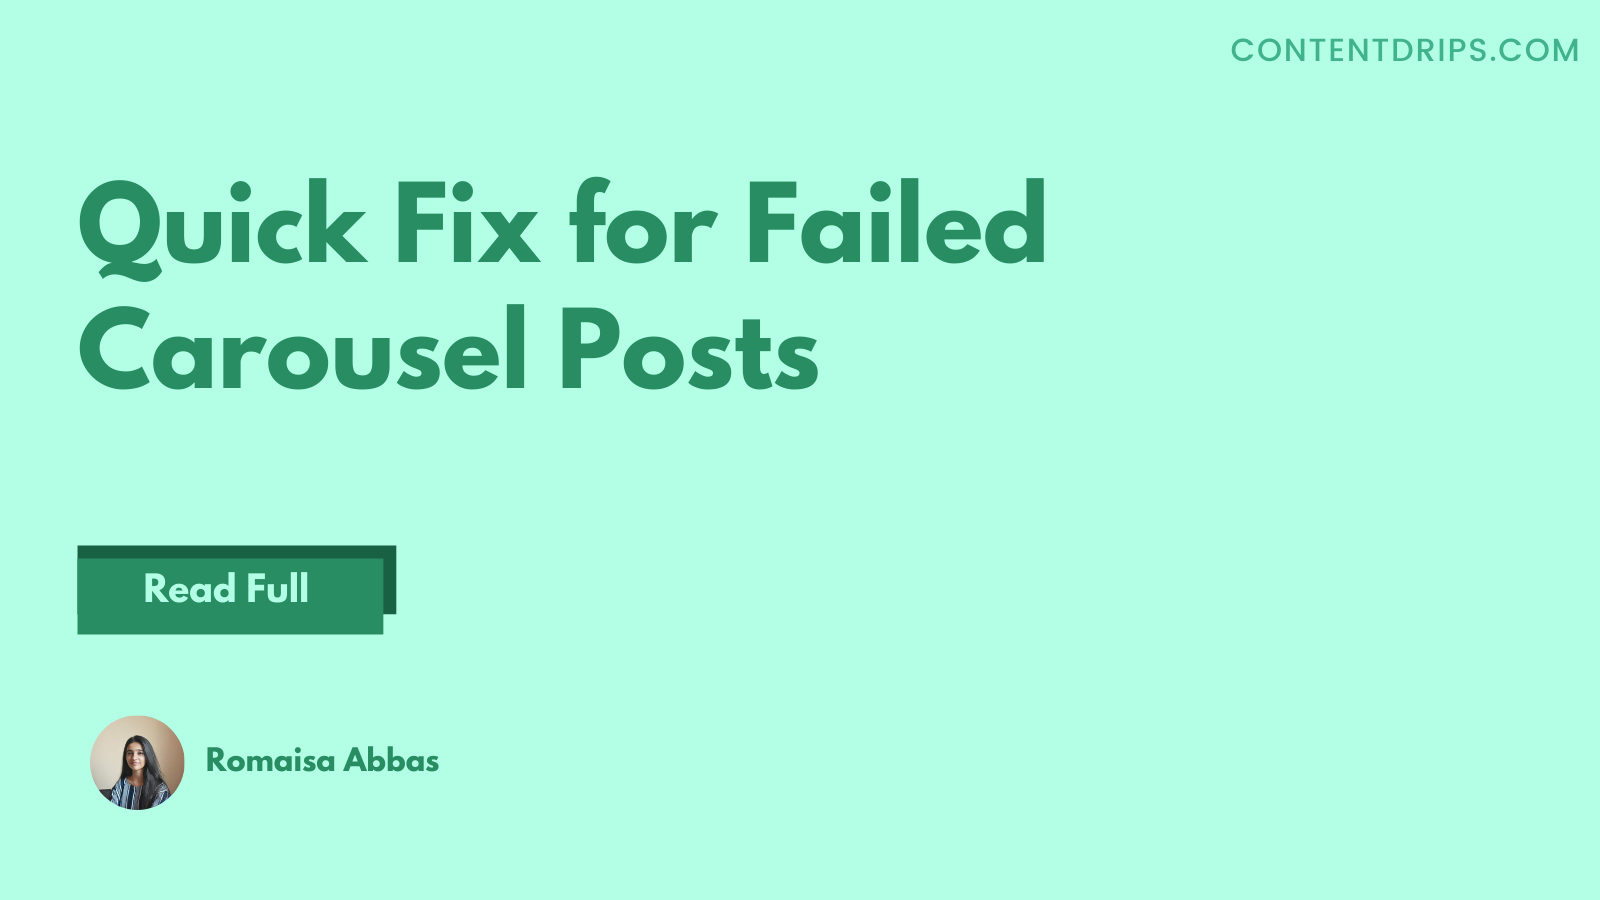 Quick Fix for Failed Carousel Posts